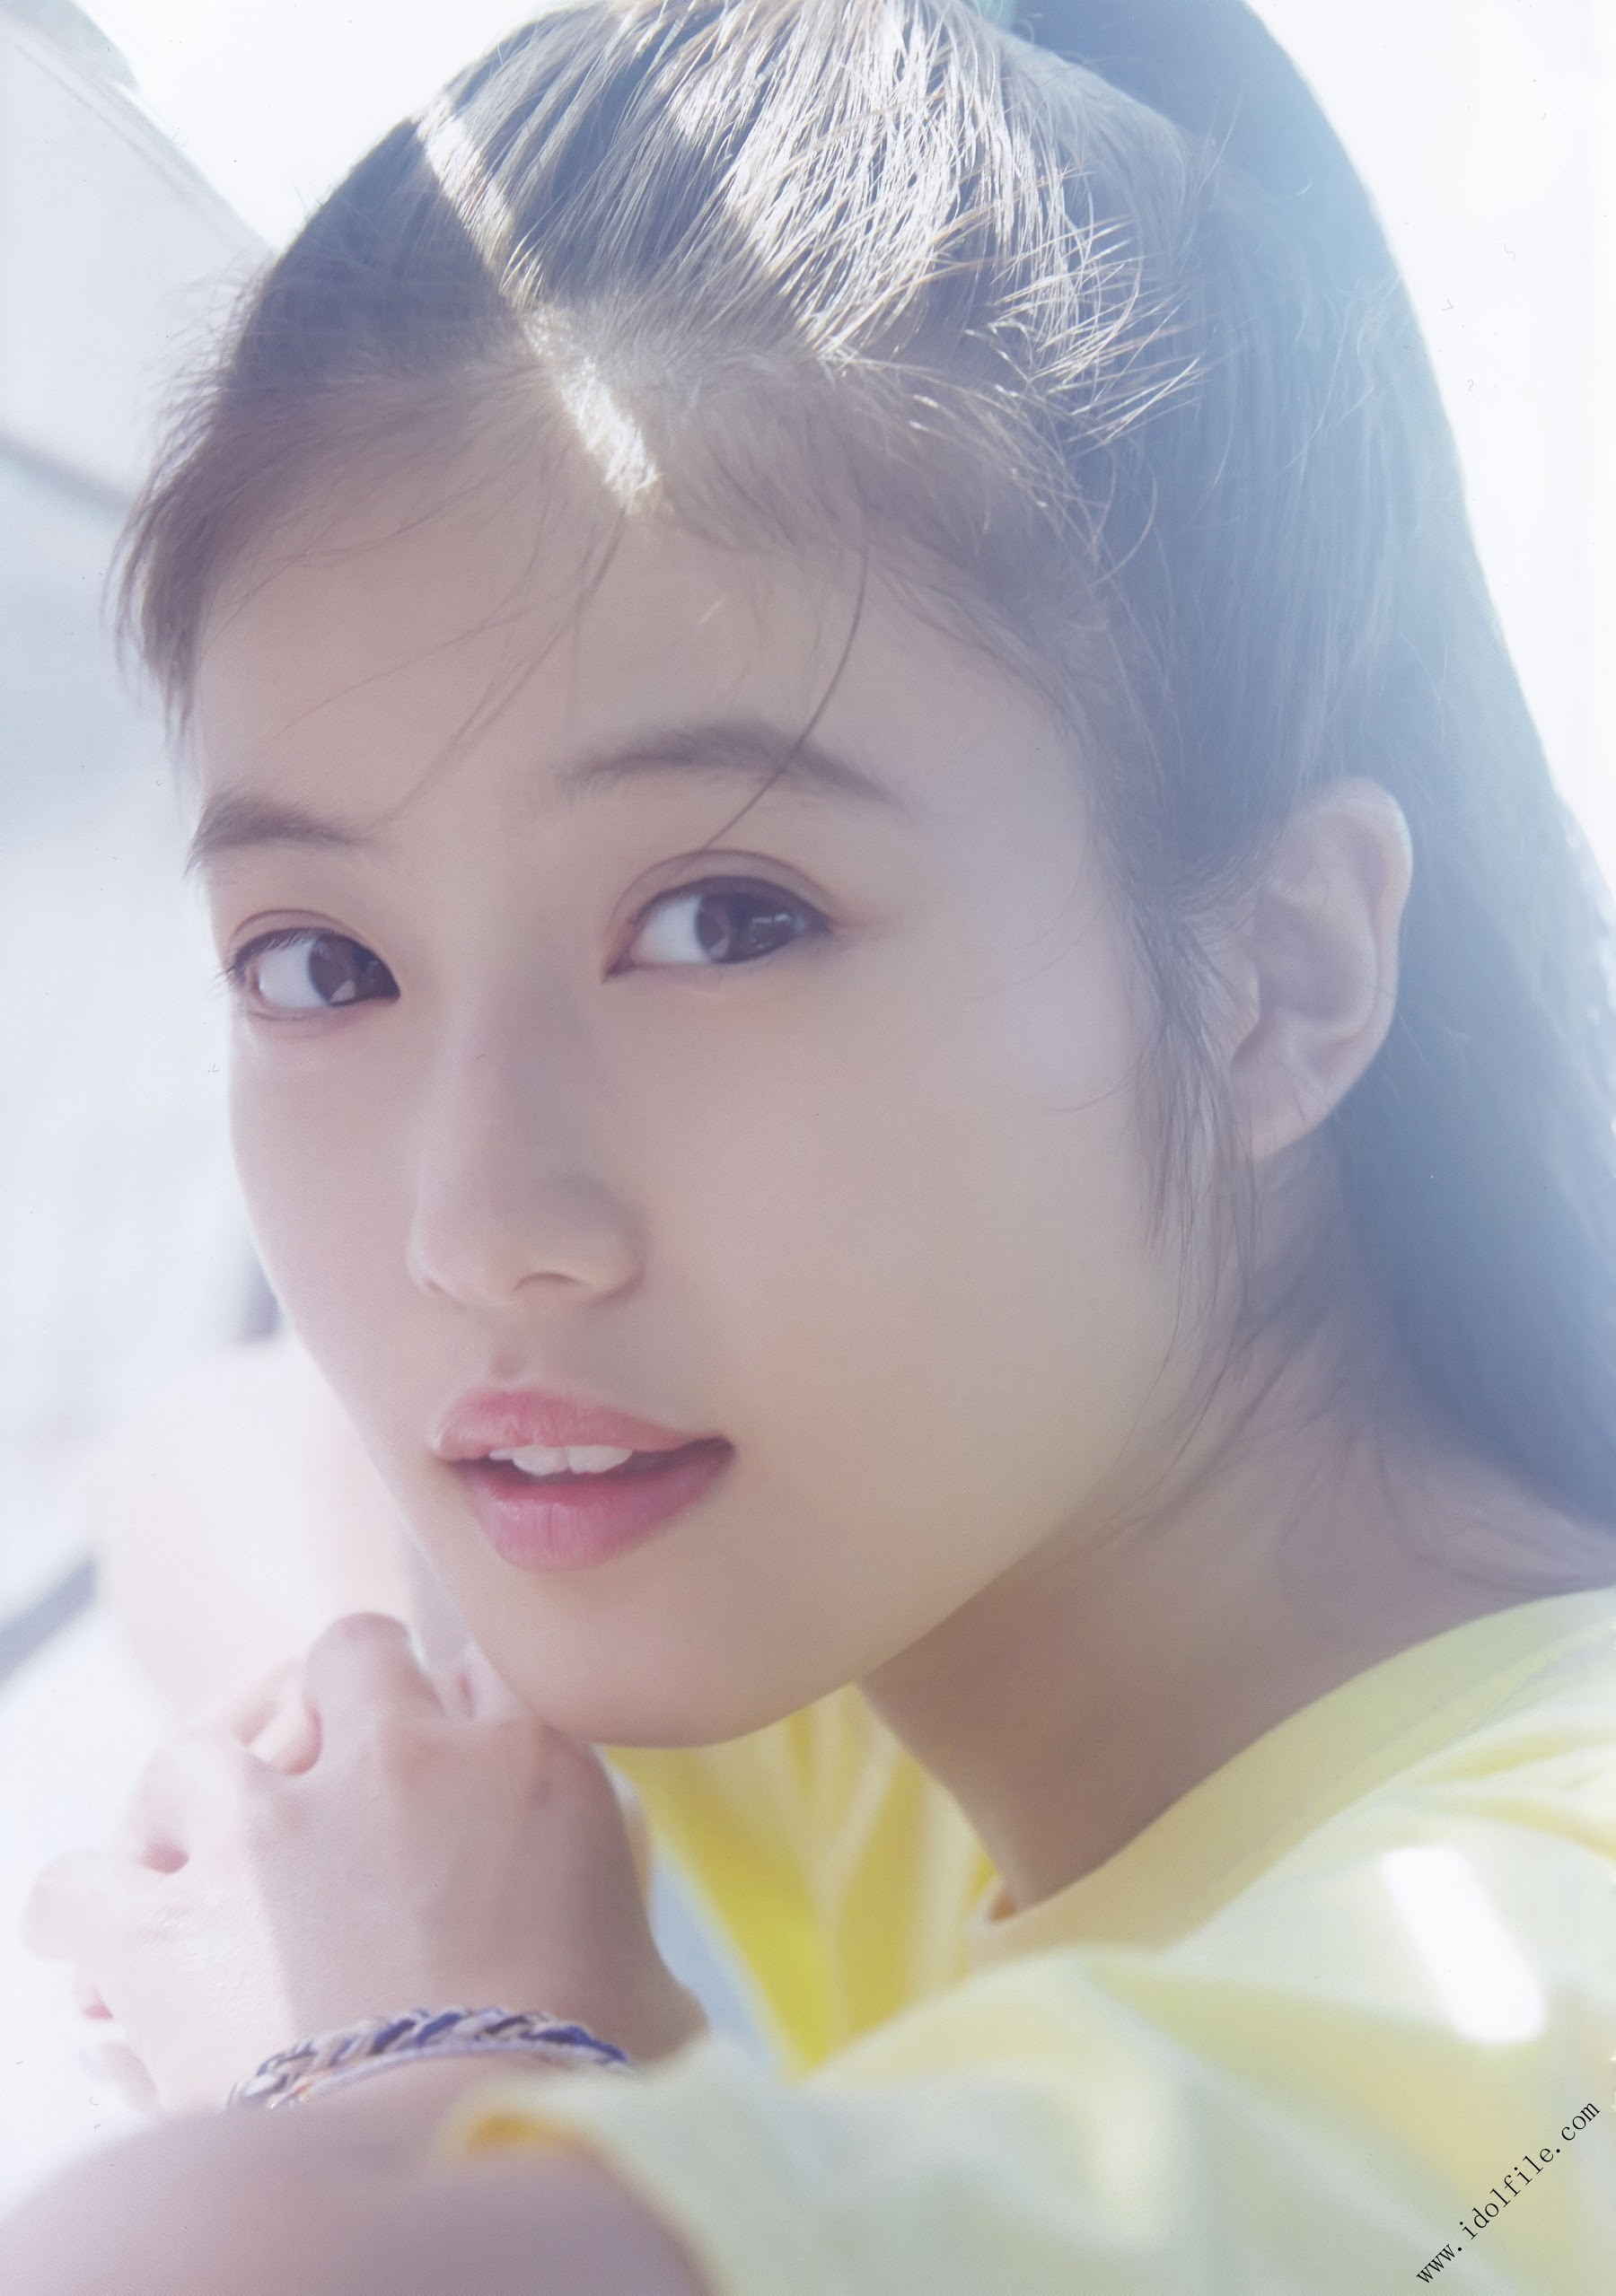 Pretty and beautiful, 22 years old and innocent Moving to the next stage as an actress Mio Imada009